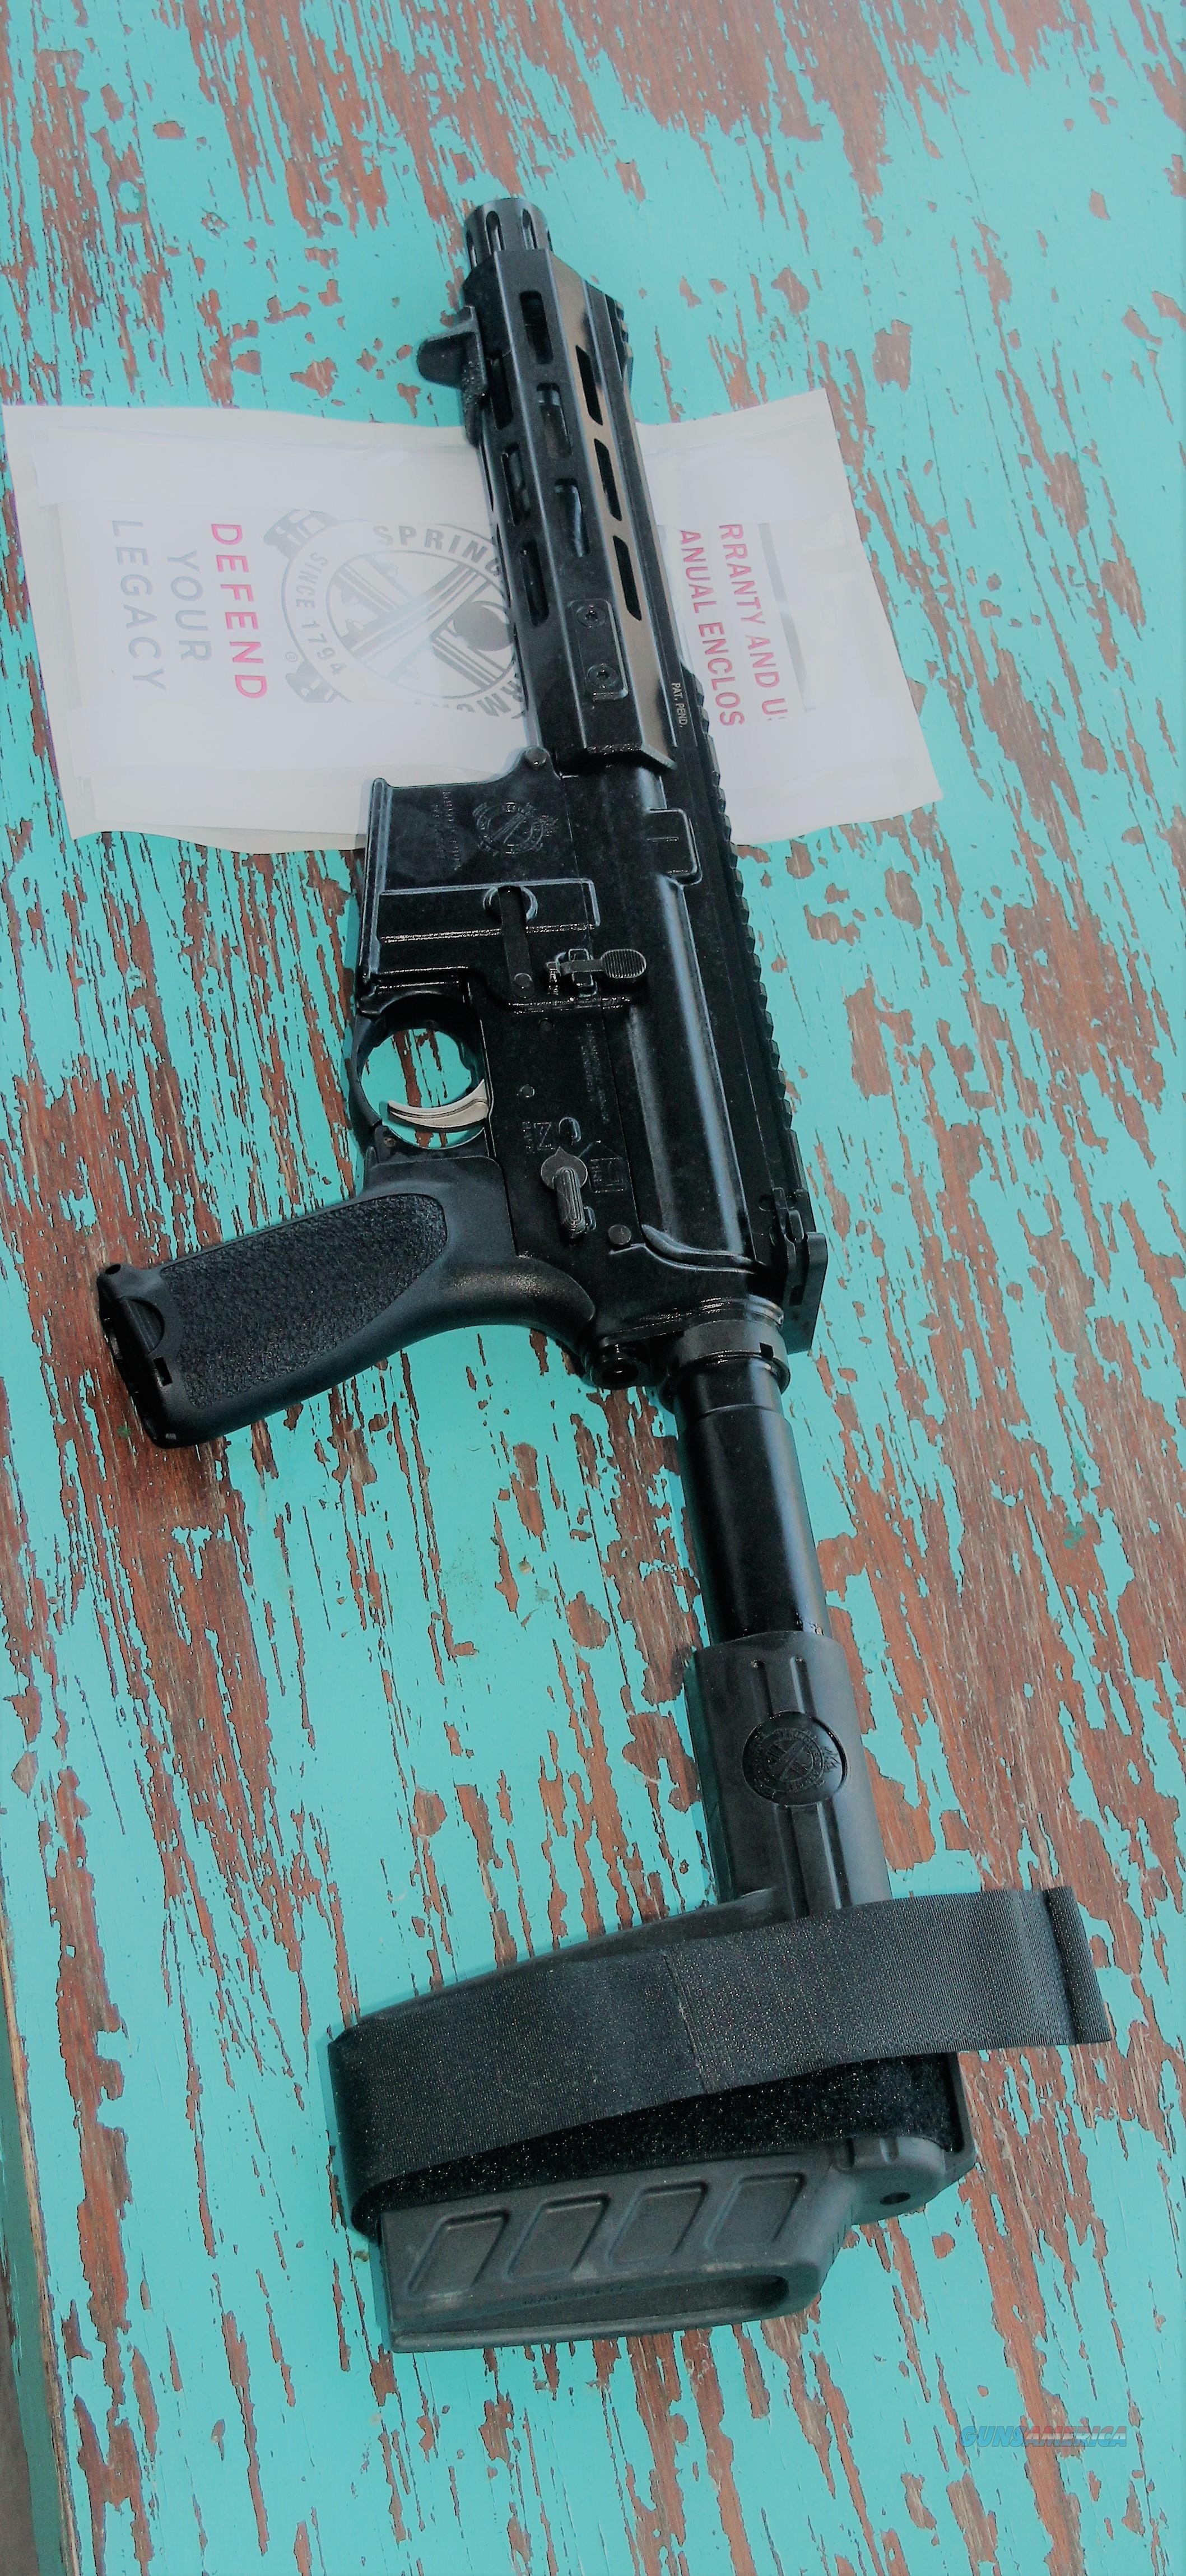 Sale $78 EASY PAY Springfield Armory Saint M-LOK Pistol Able to shoot rifle round With Tactical W forearm Stabilizing Brace SB  5.56 NATO AR15 SBX-K AR-15 Pistol Bravo company Pistol Grip Trigger Guard stainless steel NEW SPRST975556B  Guns > Rifles > Springfield Armory Rifles > SAINT